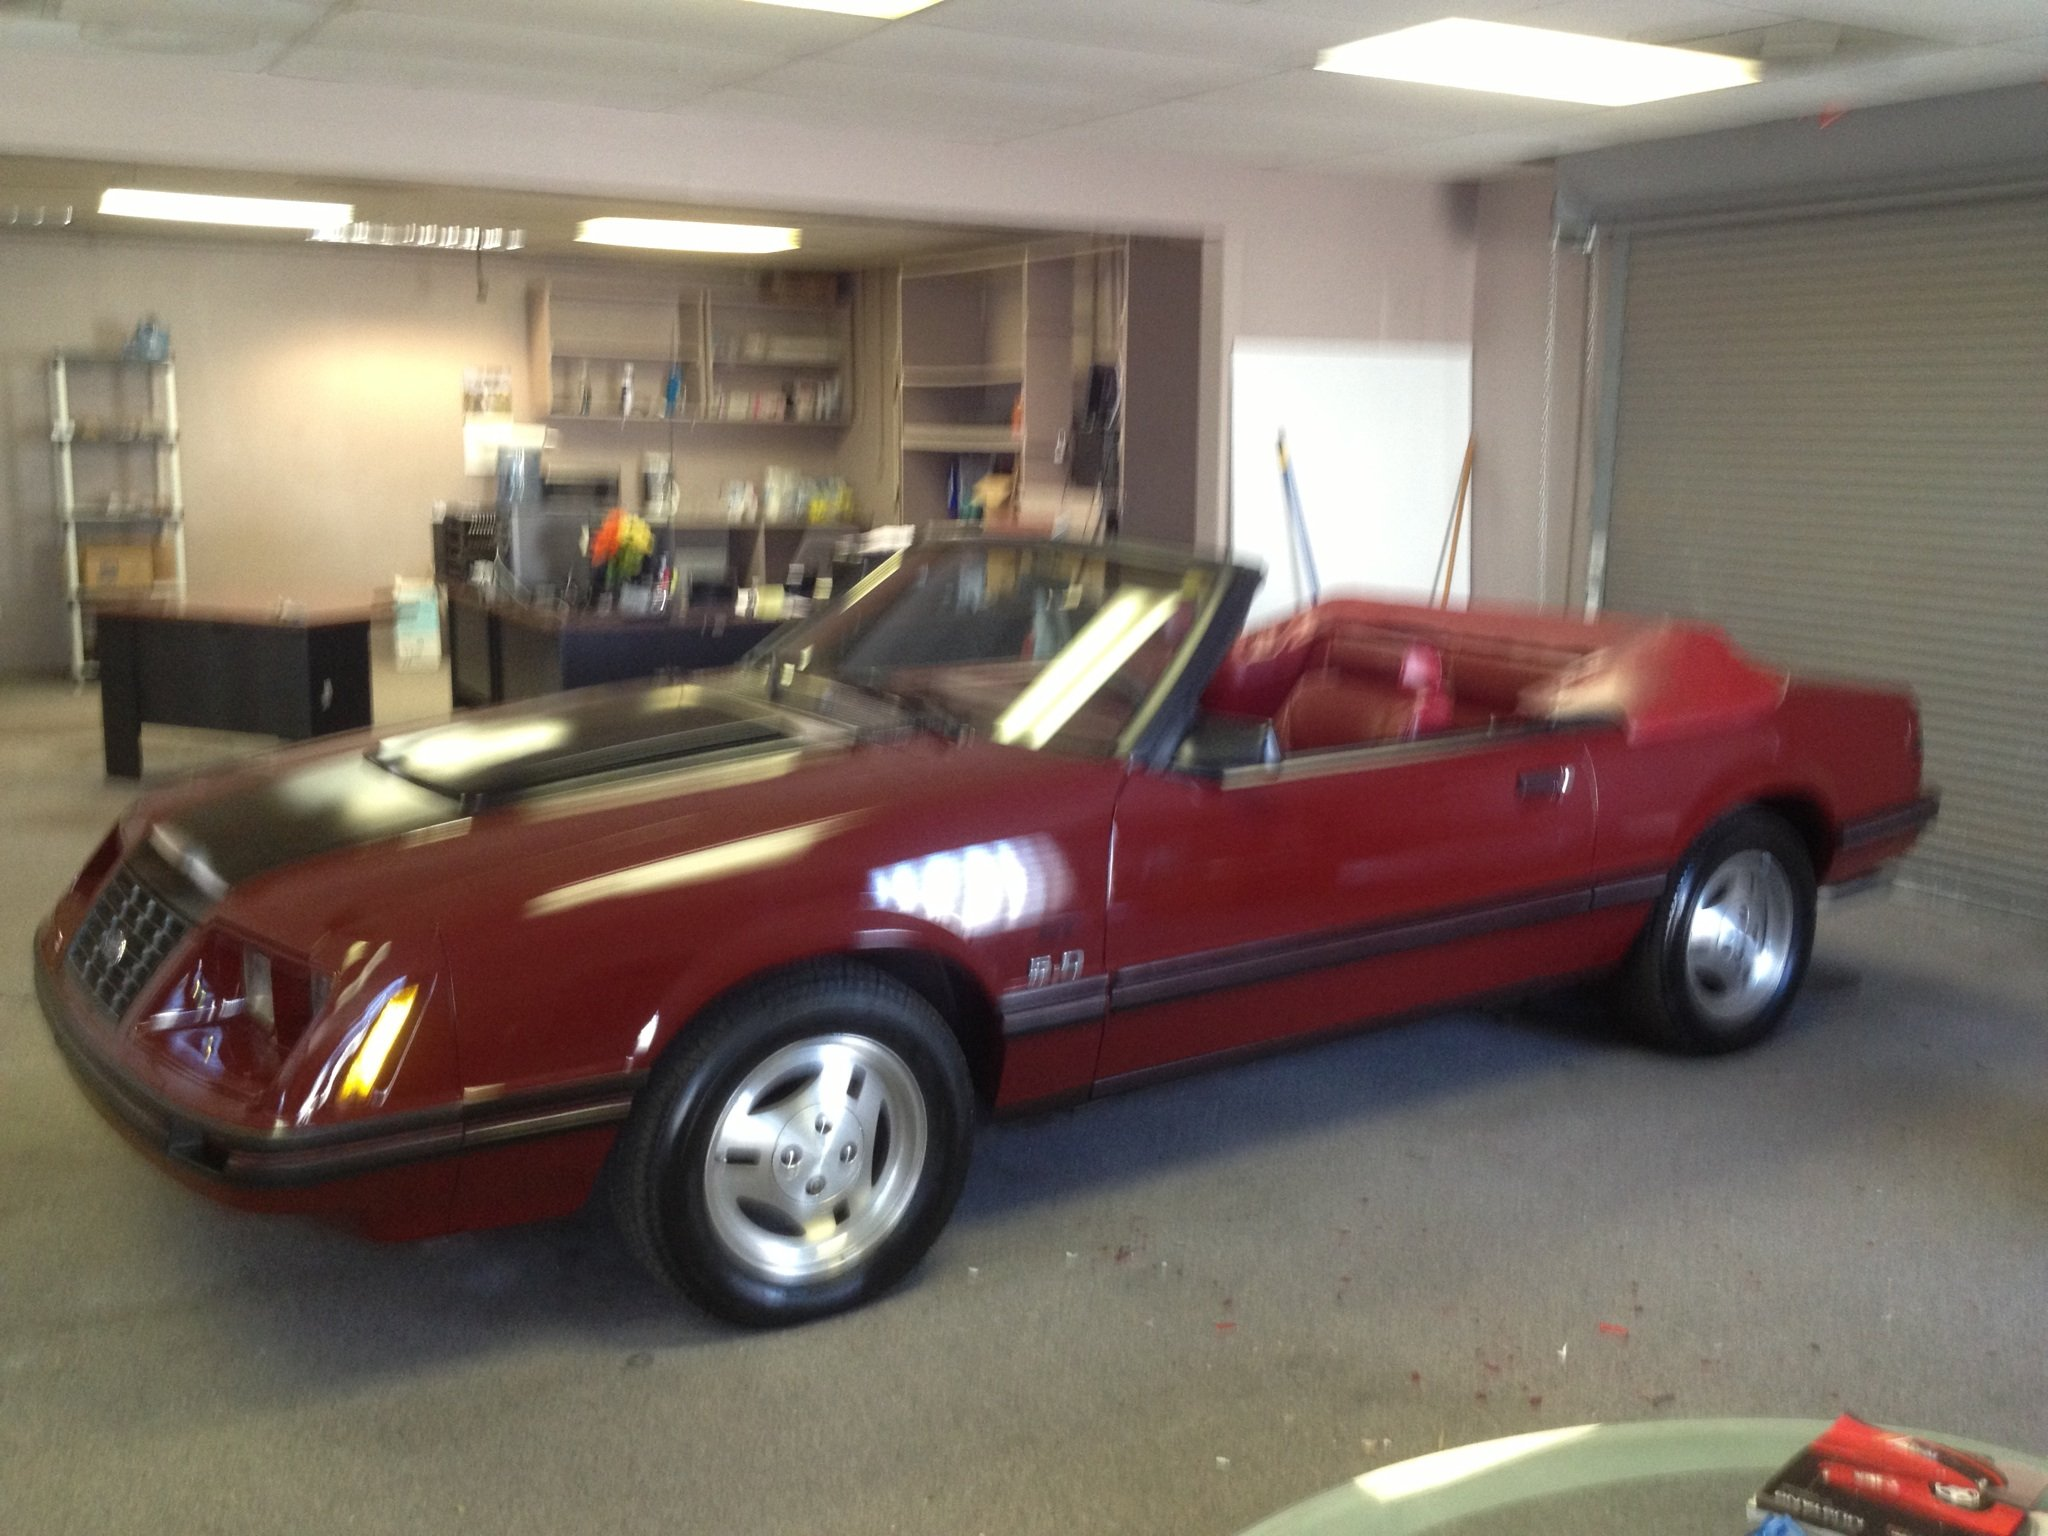 2010 Mustang Convertible For Sale >> What is a 1983 GT convertible worth - Ford Mustang Forum